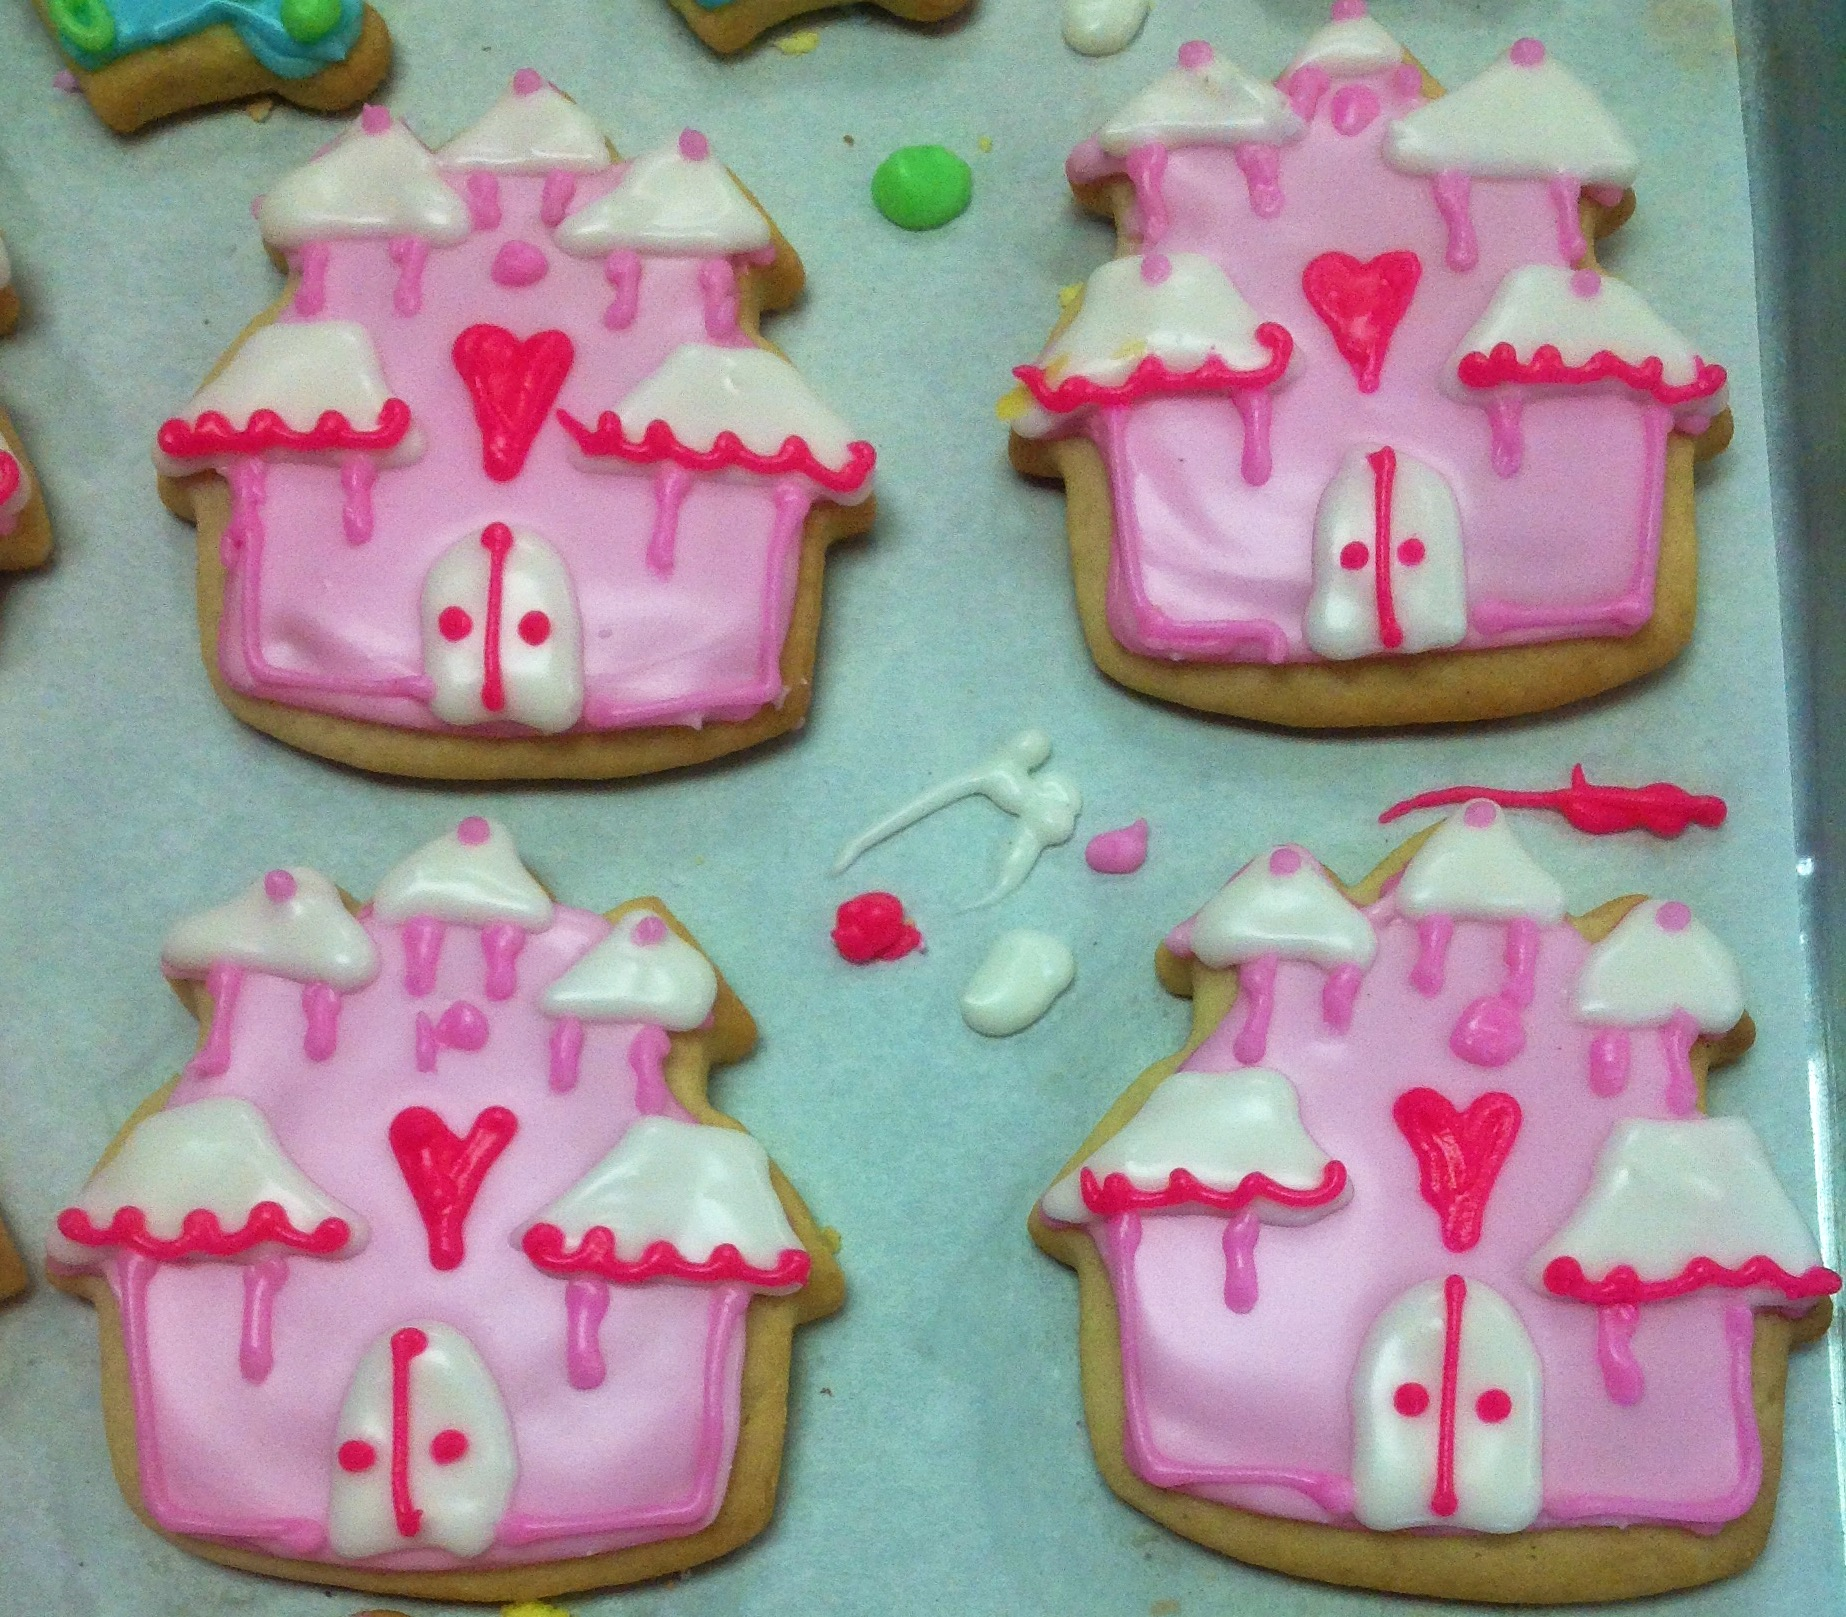 Princess Cookies at Dolce and Biscotti Italian Bakery